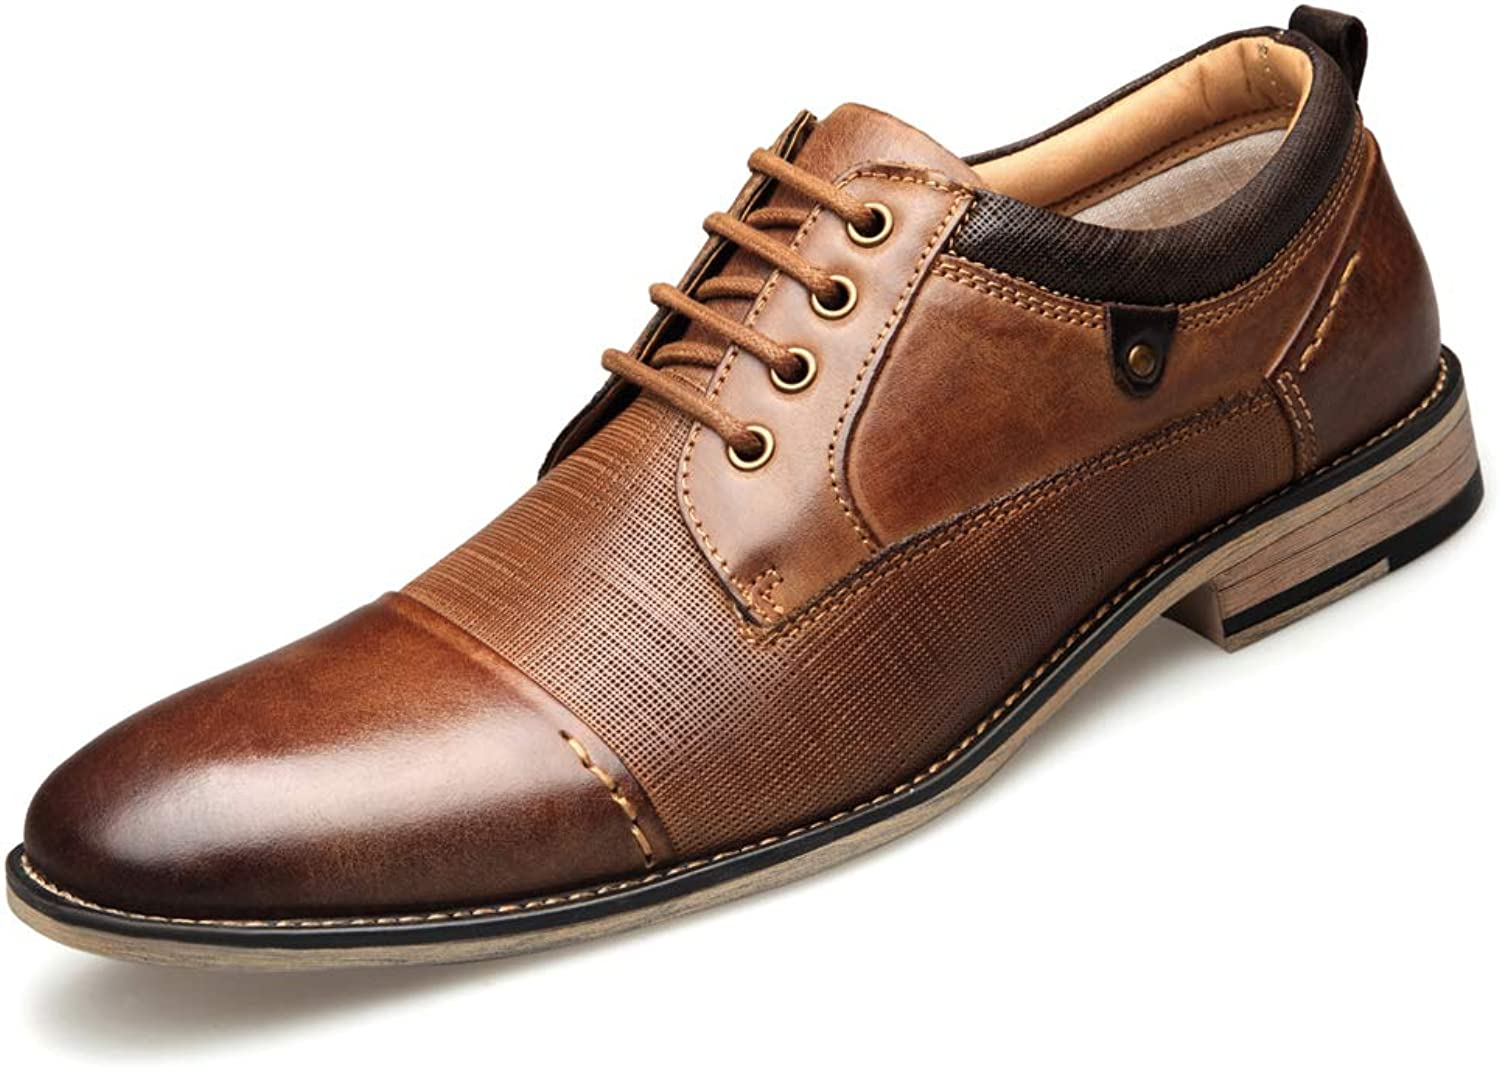 Men's Oxford shoes Classic Modern Round Head Captoe shoes Embossed Dress lace-up shoes